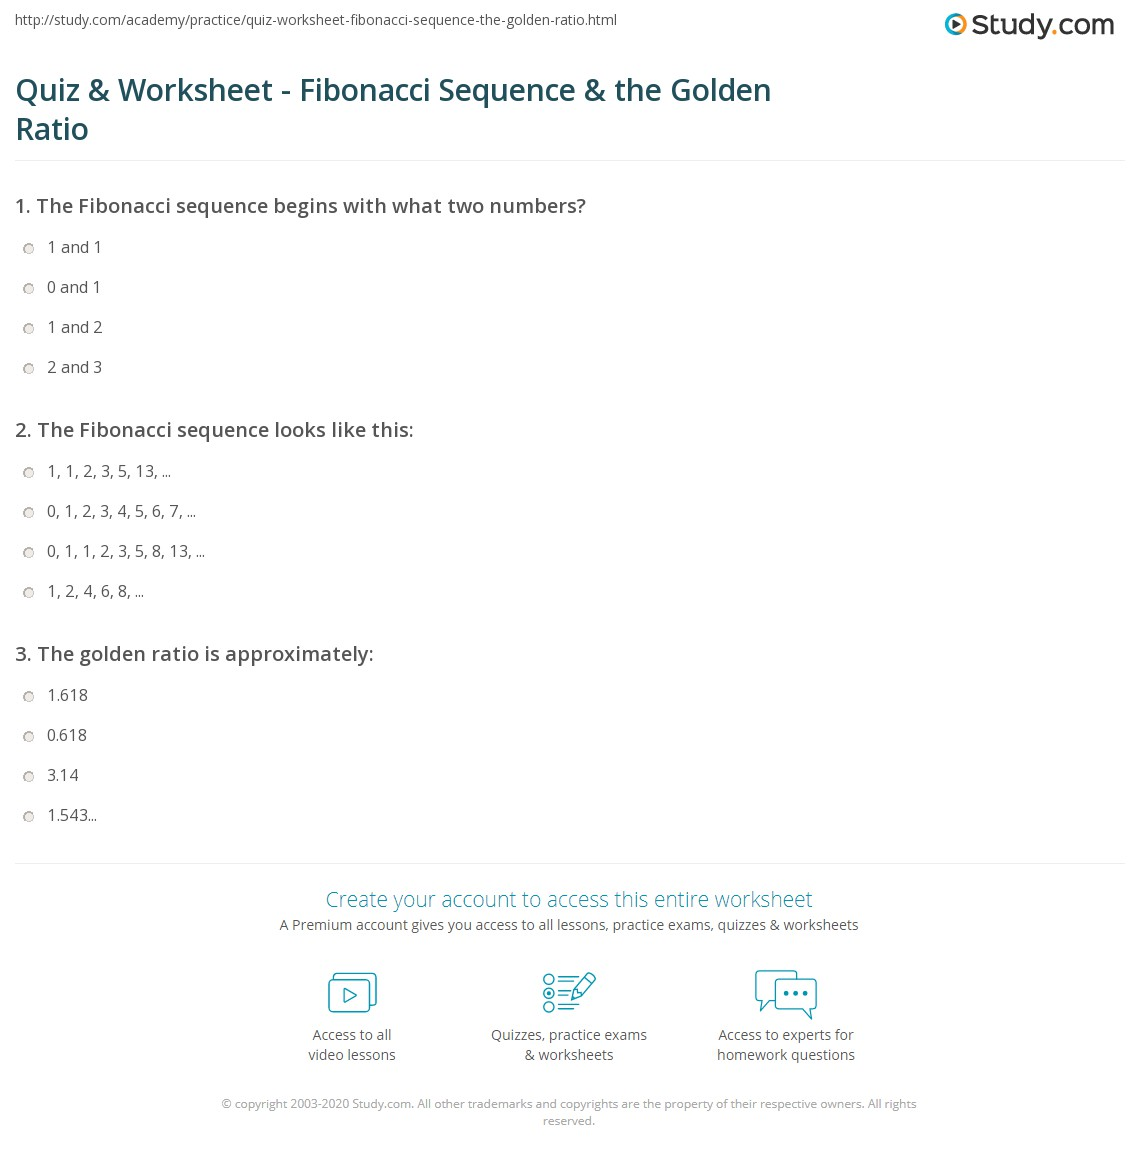 Quiz & Worksheet - Fibonacci Sequence & the Golden Ratio | Study.com